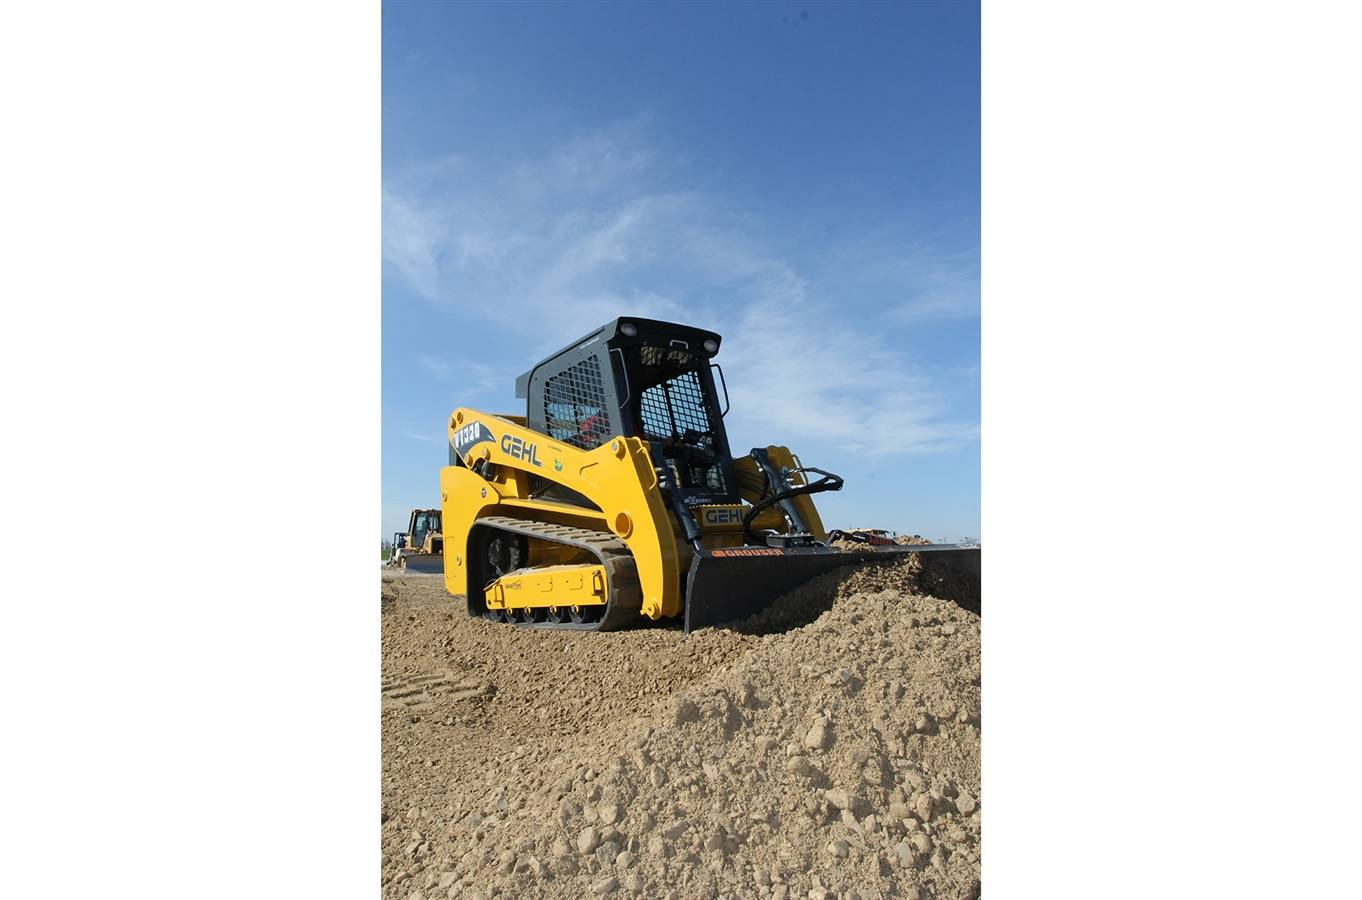 2018 Gehl VT320 Track Loader for sale in Harlan, IA  Nelson